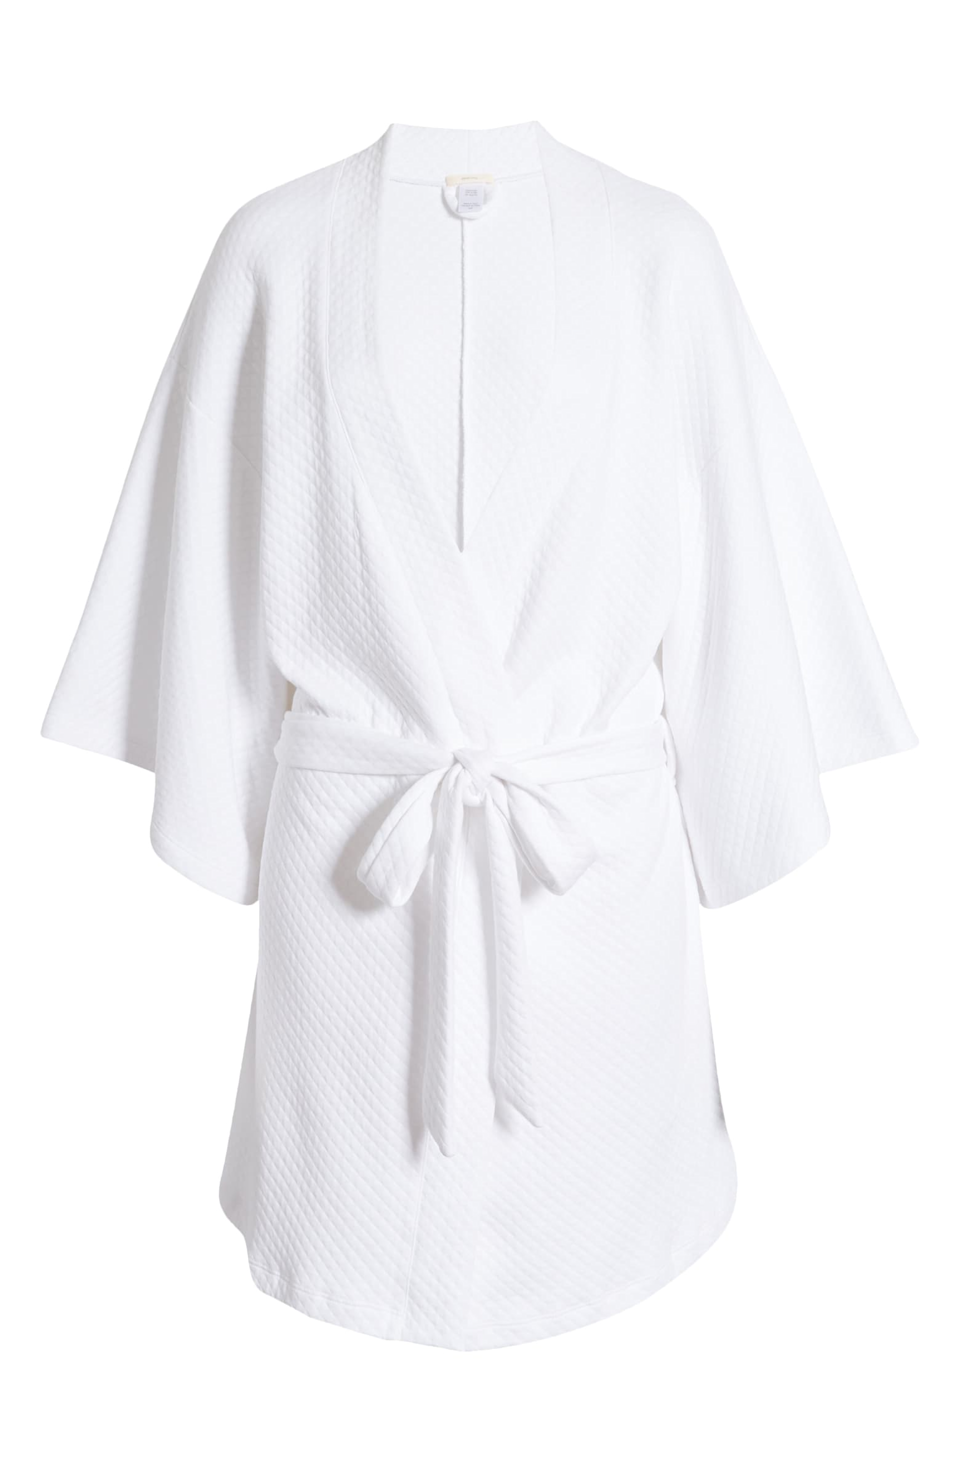 """<h3><a href=""""https://www.nordstrom.com/s/eberjey-zen-short-spa-robe/5607214"""" rel=""""nofollow noopener"""" target=""""_blank"""" data-ylk=""""slk:Eberjey Zen Short Spa Robe"""" class=""""link rapid-noclick-resp"""">Eberjey Zen Short Spa Robe</a></h3><br>This simple waffle-style robe gets a sexier modern twist with its short length and wide-cut sleeves — and, as one pleased lounger put it, """"I love it! Perfect for quarantining in comfort and a little luxurious treat to make your day better.""""<br><br><strong>Eberjey</strong> Zen Short Spa Robe, $, available at <a href=""""https://go.skimresources.com/?id=30283X879131&url=https%3A%2F%2Fwww.nordstrom.com%2Fs%2Feberjey-zen-short-spa-robe%2F5607214"""" rel=""""nofollow noopener"""" target=""""_blank"""" data-ylk=""""slk:Nordstrom"""" class=""""link rapid-noclick-resp"""">Nordstrom</a>"""